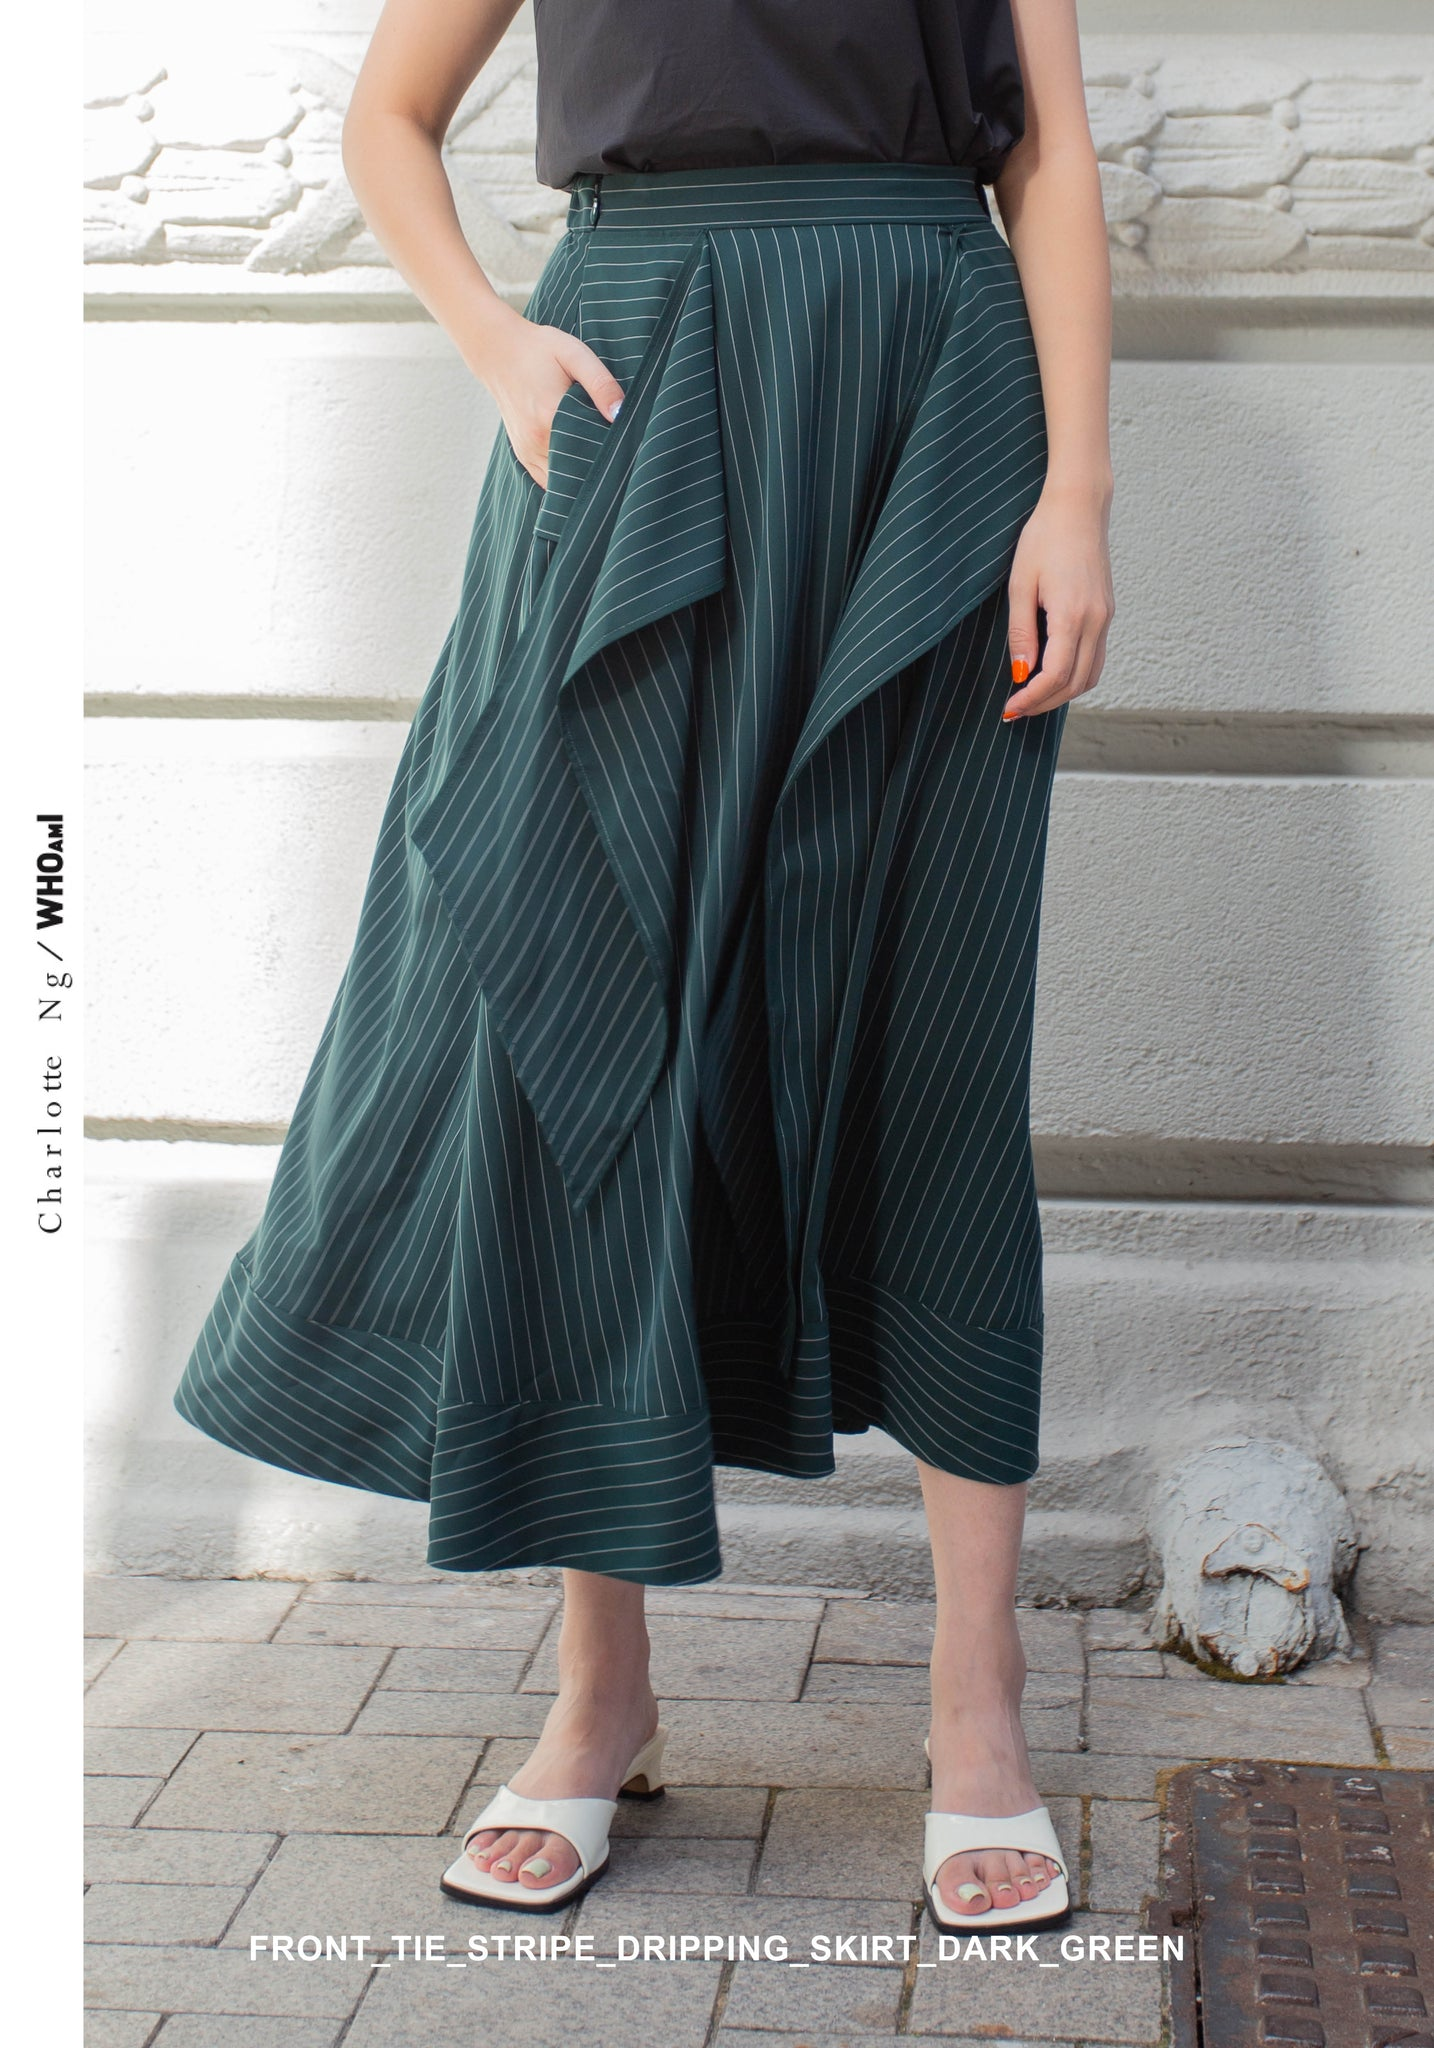 Front Tie Stripe Dripping Skirt Dark Green - whoami